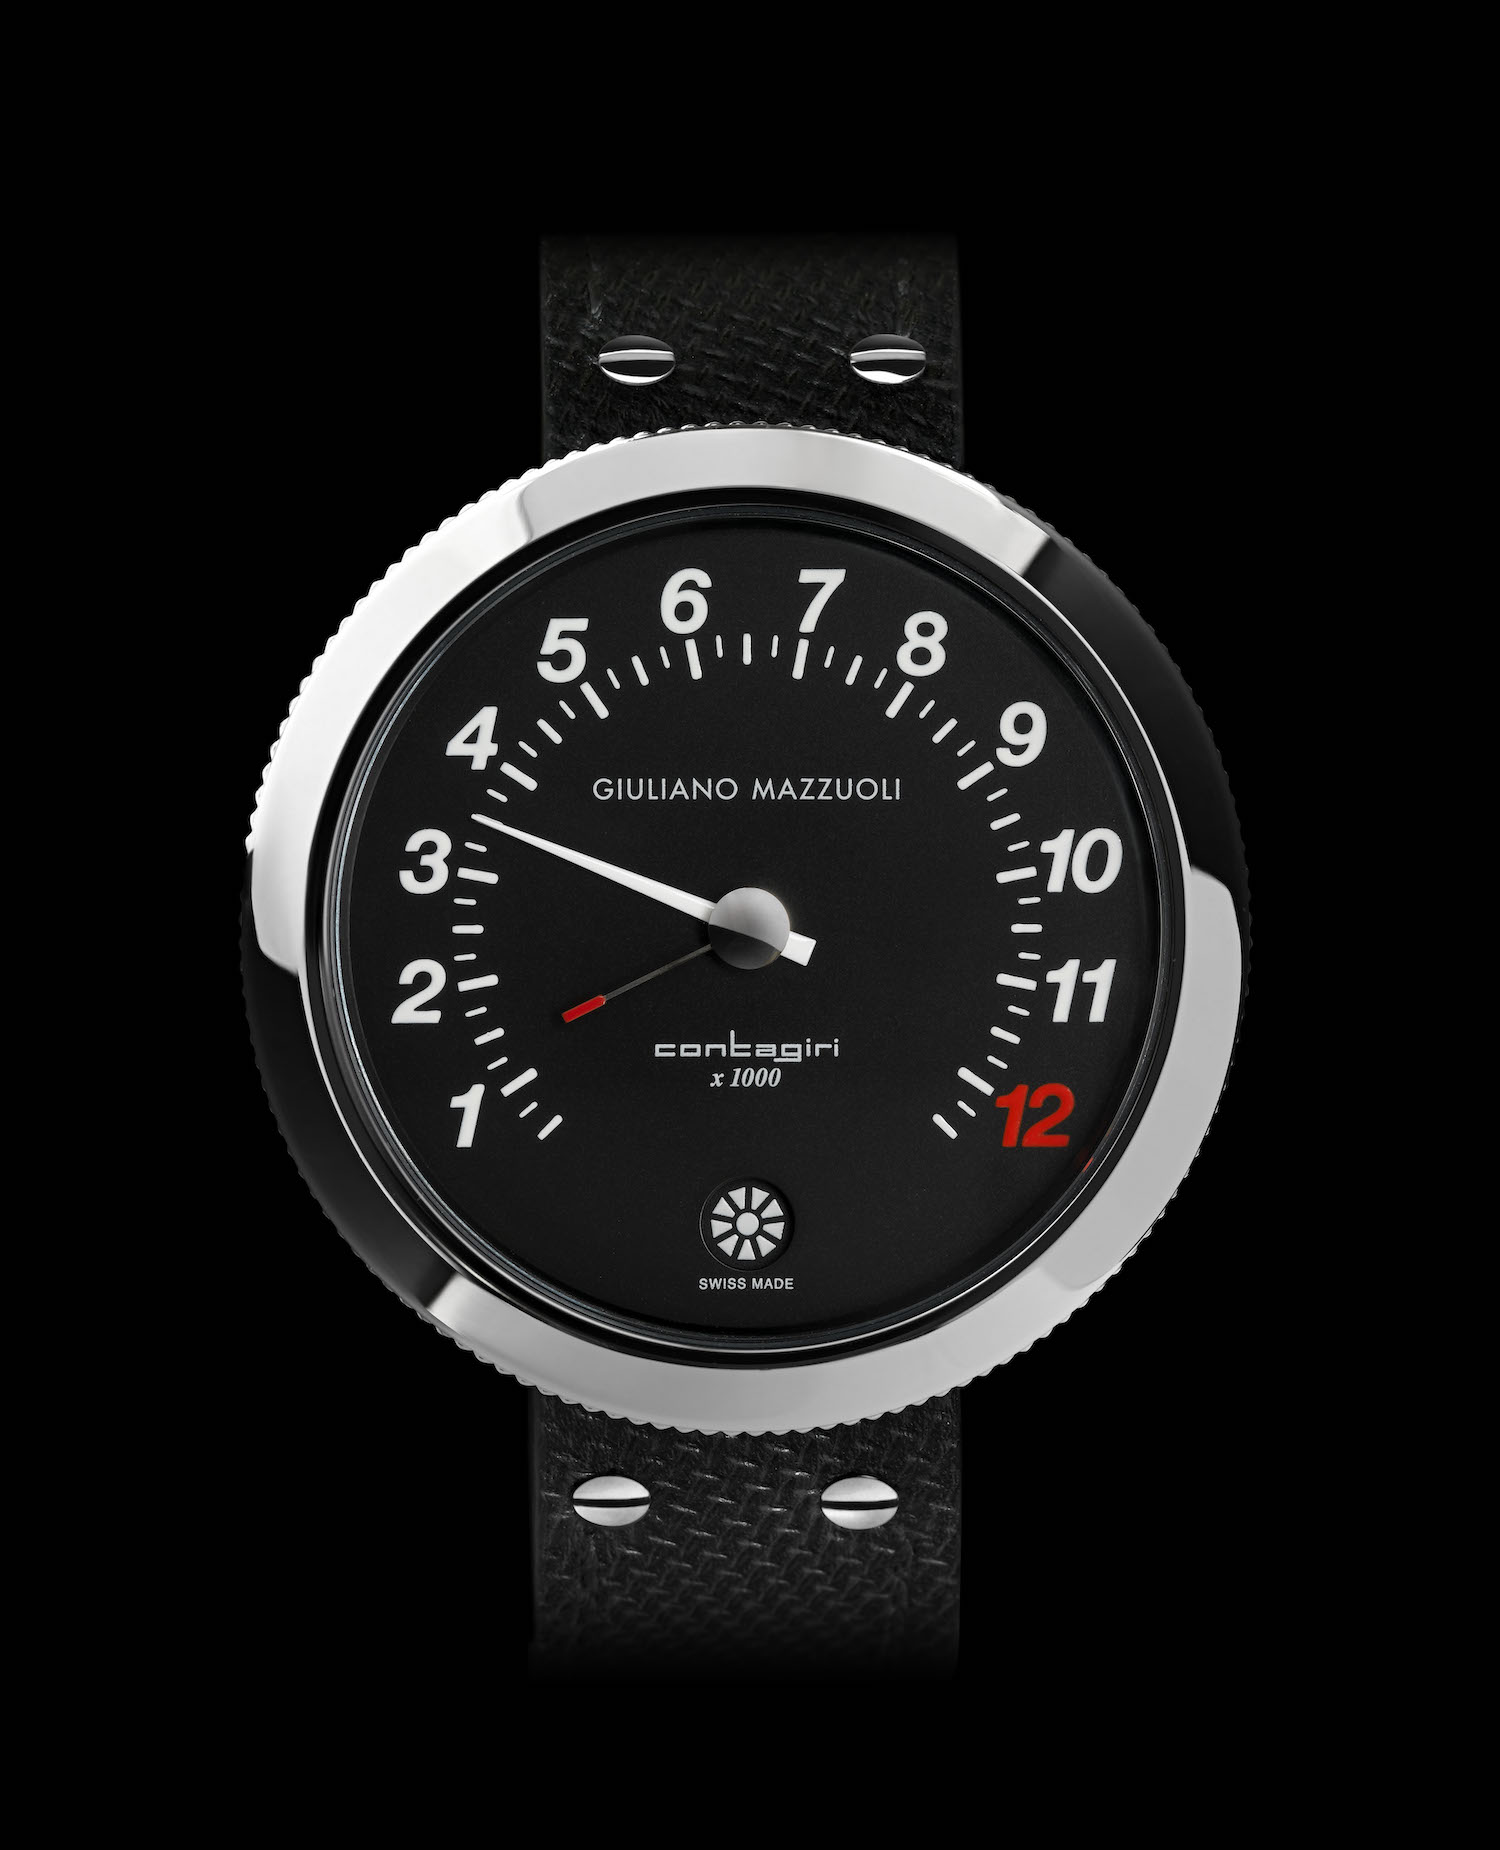 Giuliano Mazzuoli watches